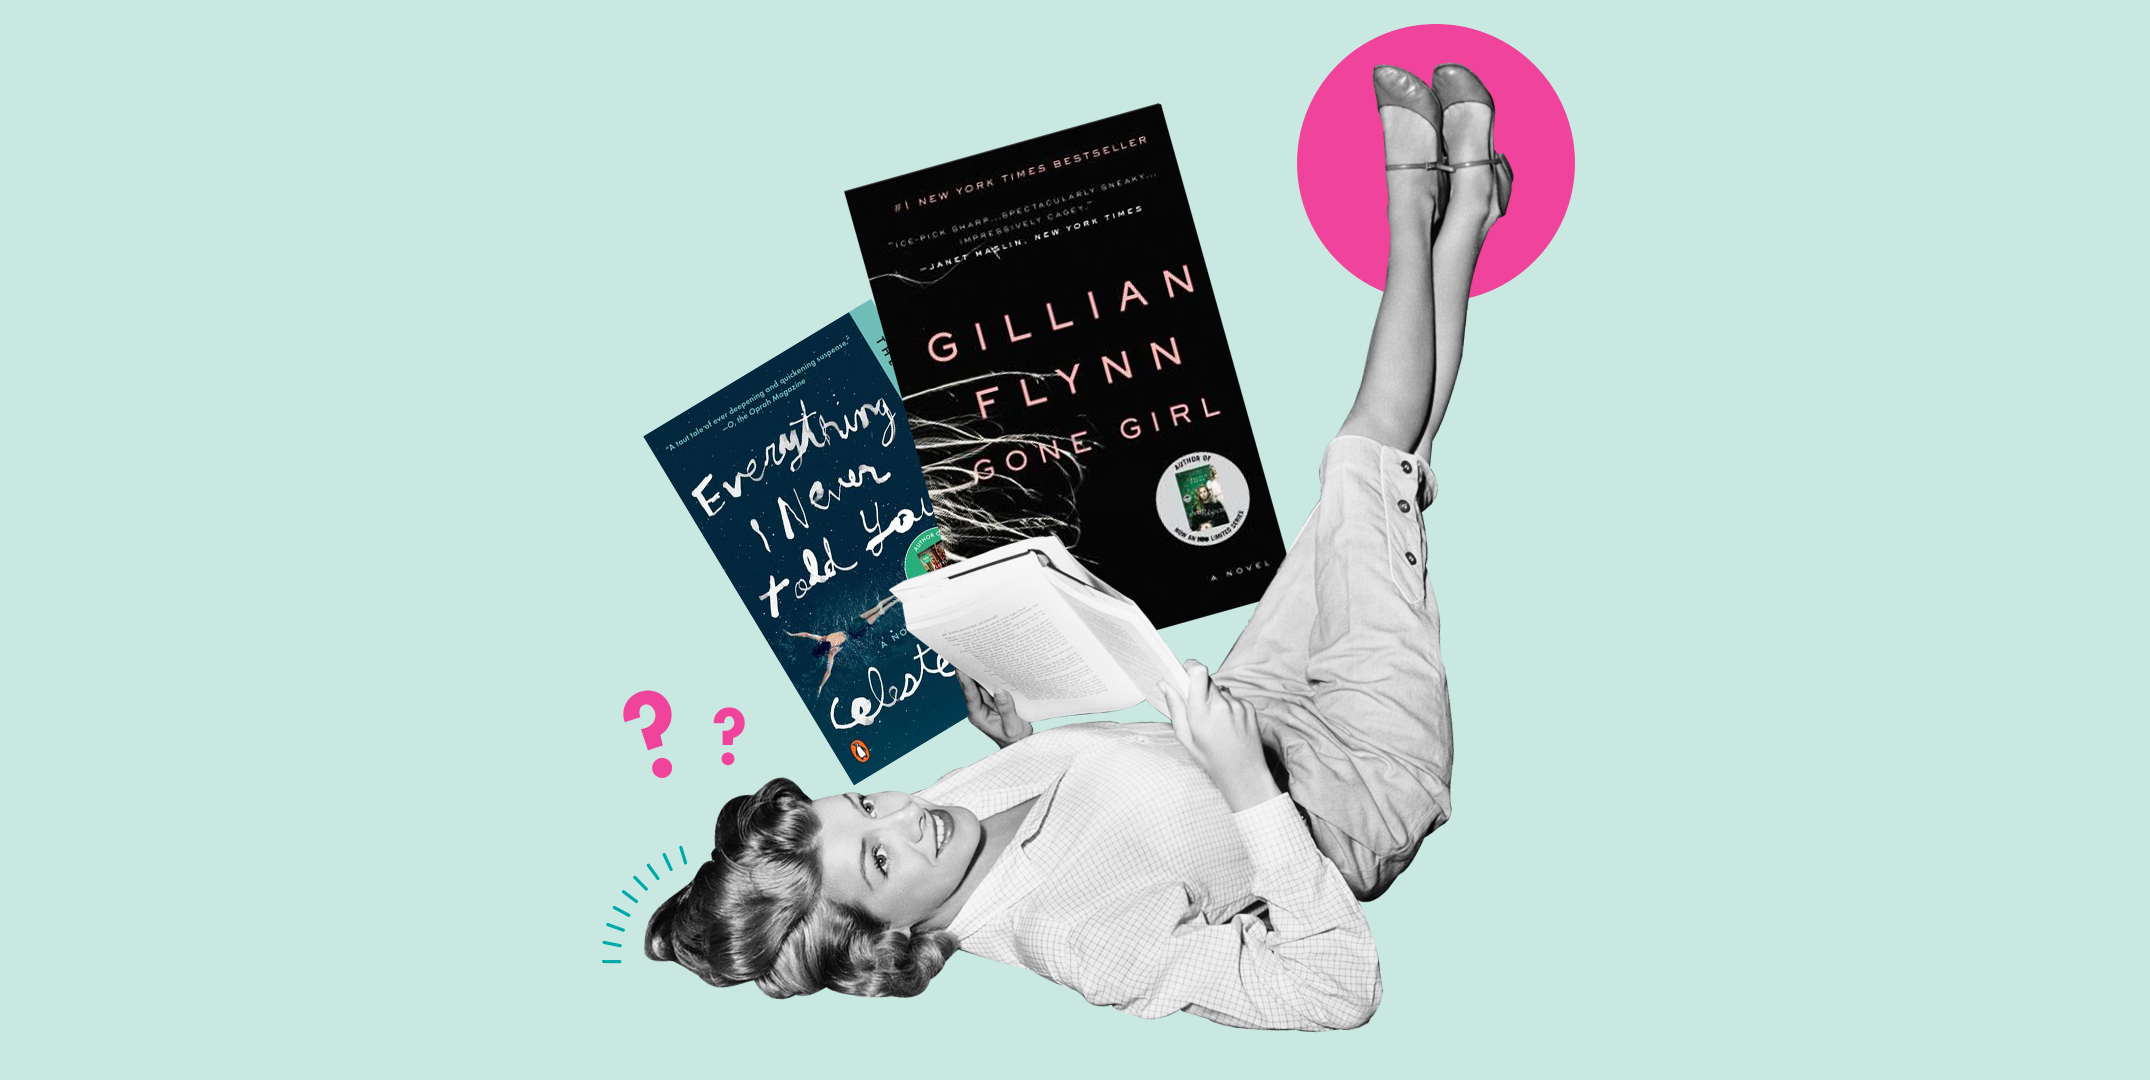 12 Mystery Books You Won't Be Able to Put Down Until You've Cracked the Case